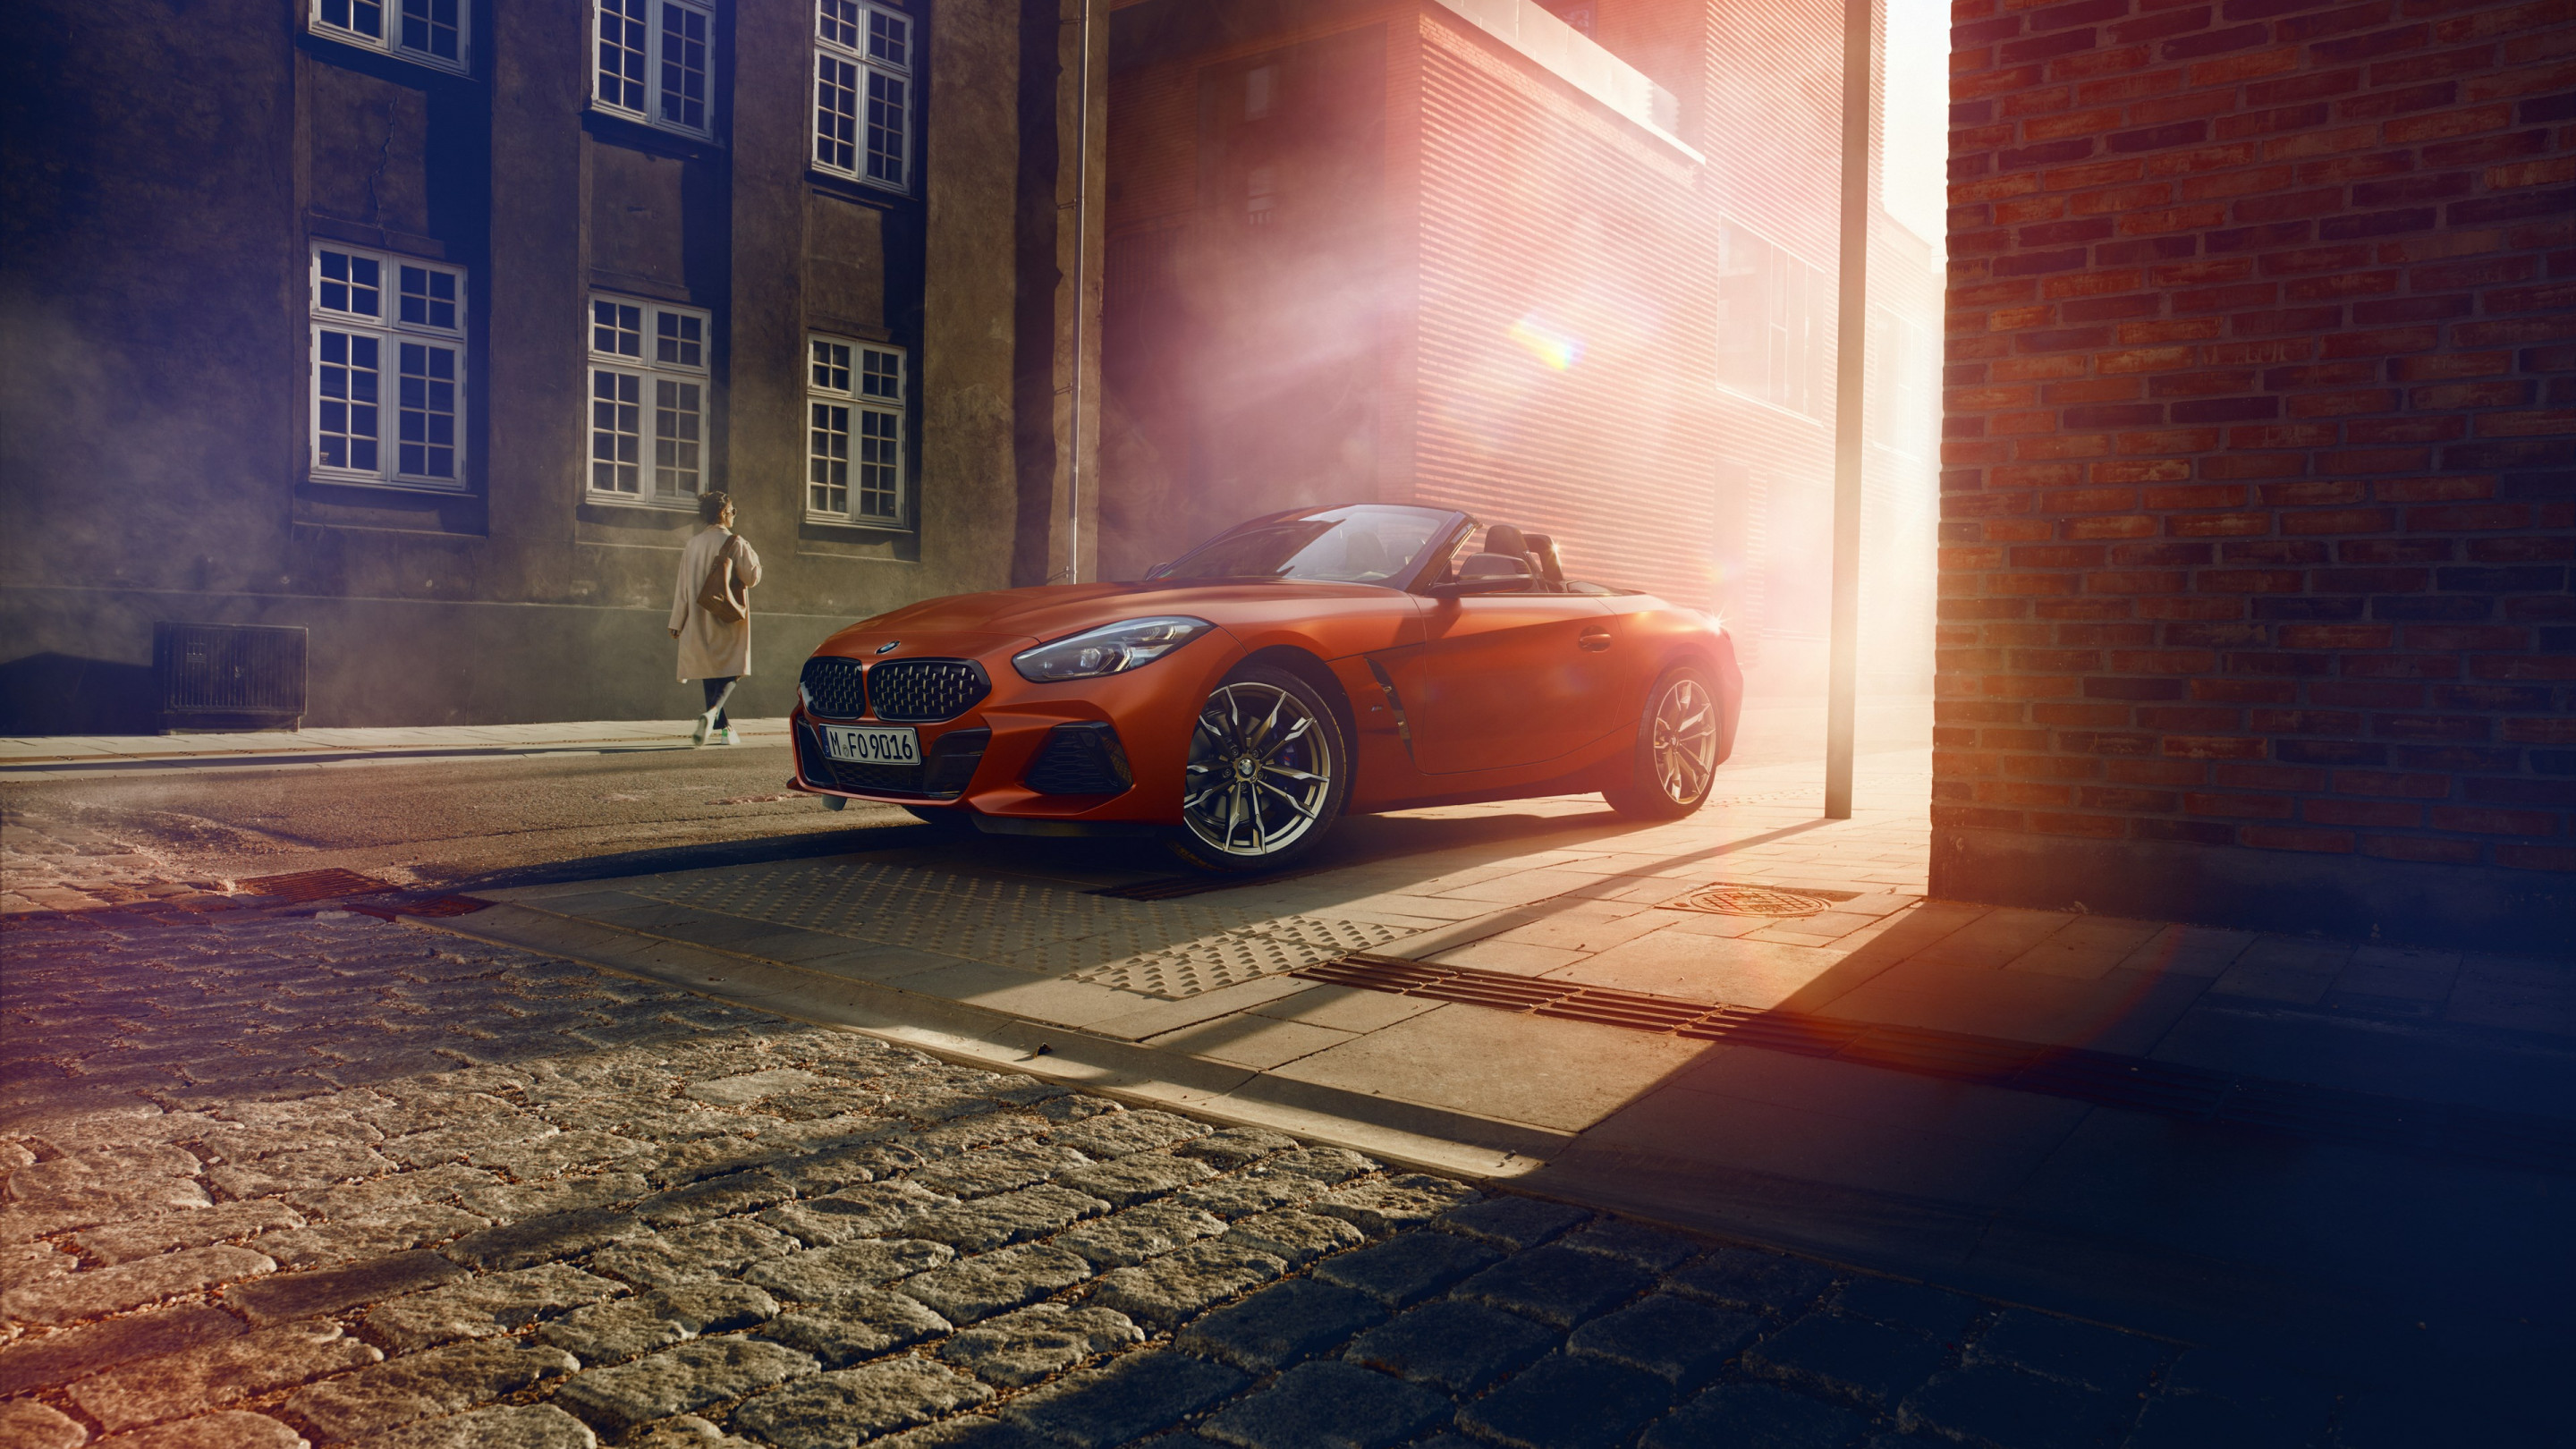 BMW Z4 2019 | 2880x1620 wallpaper